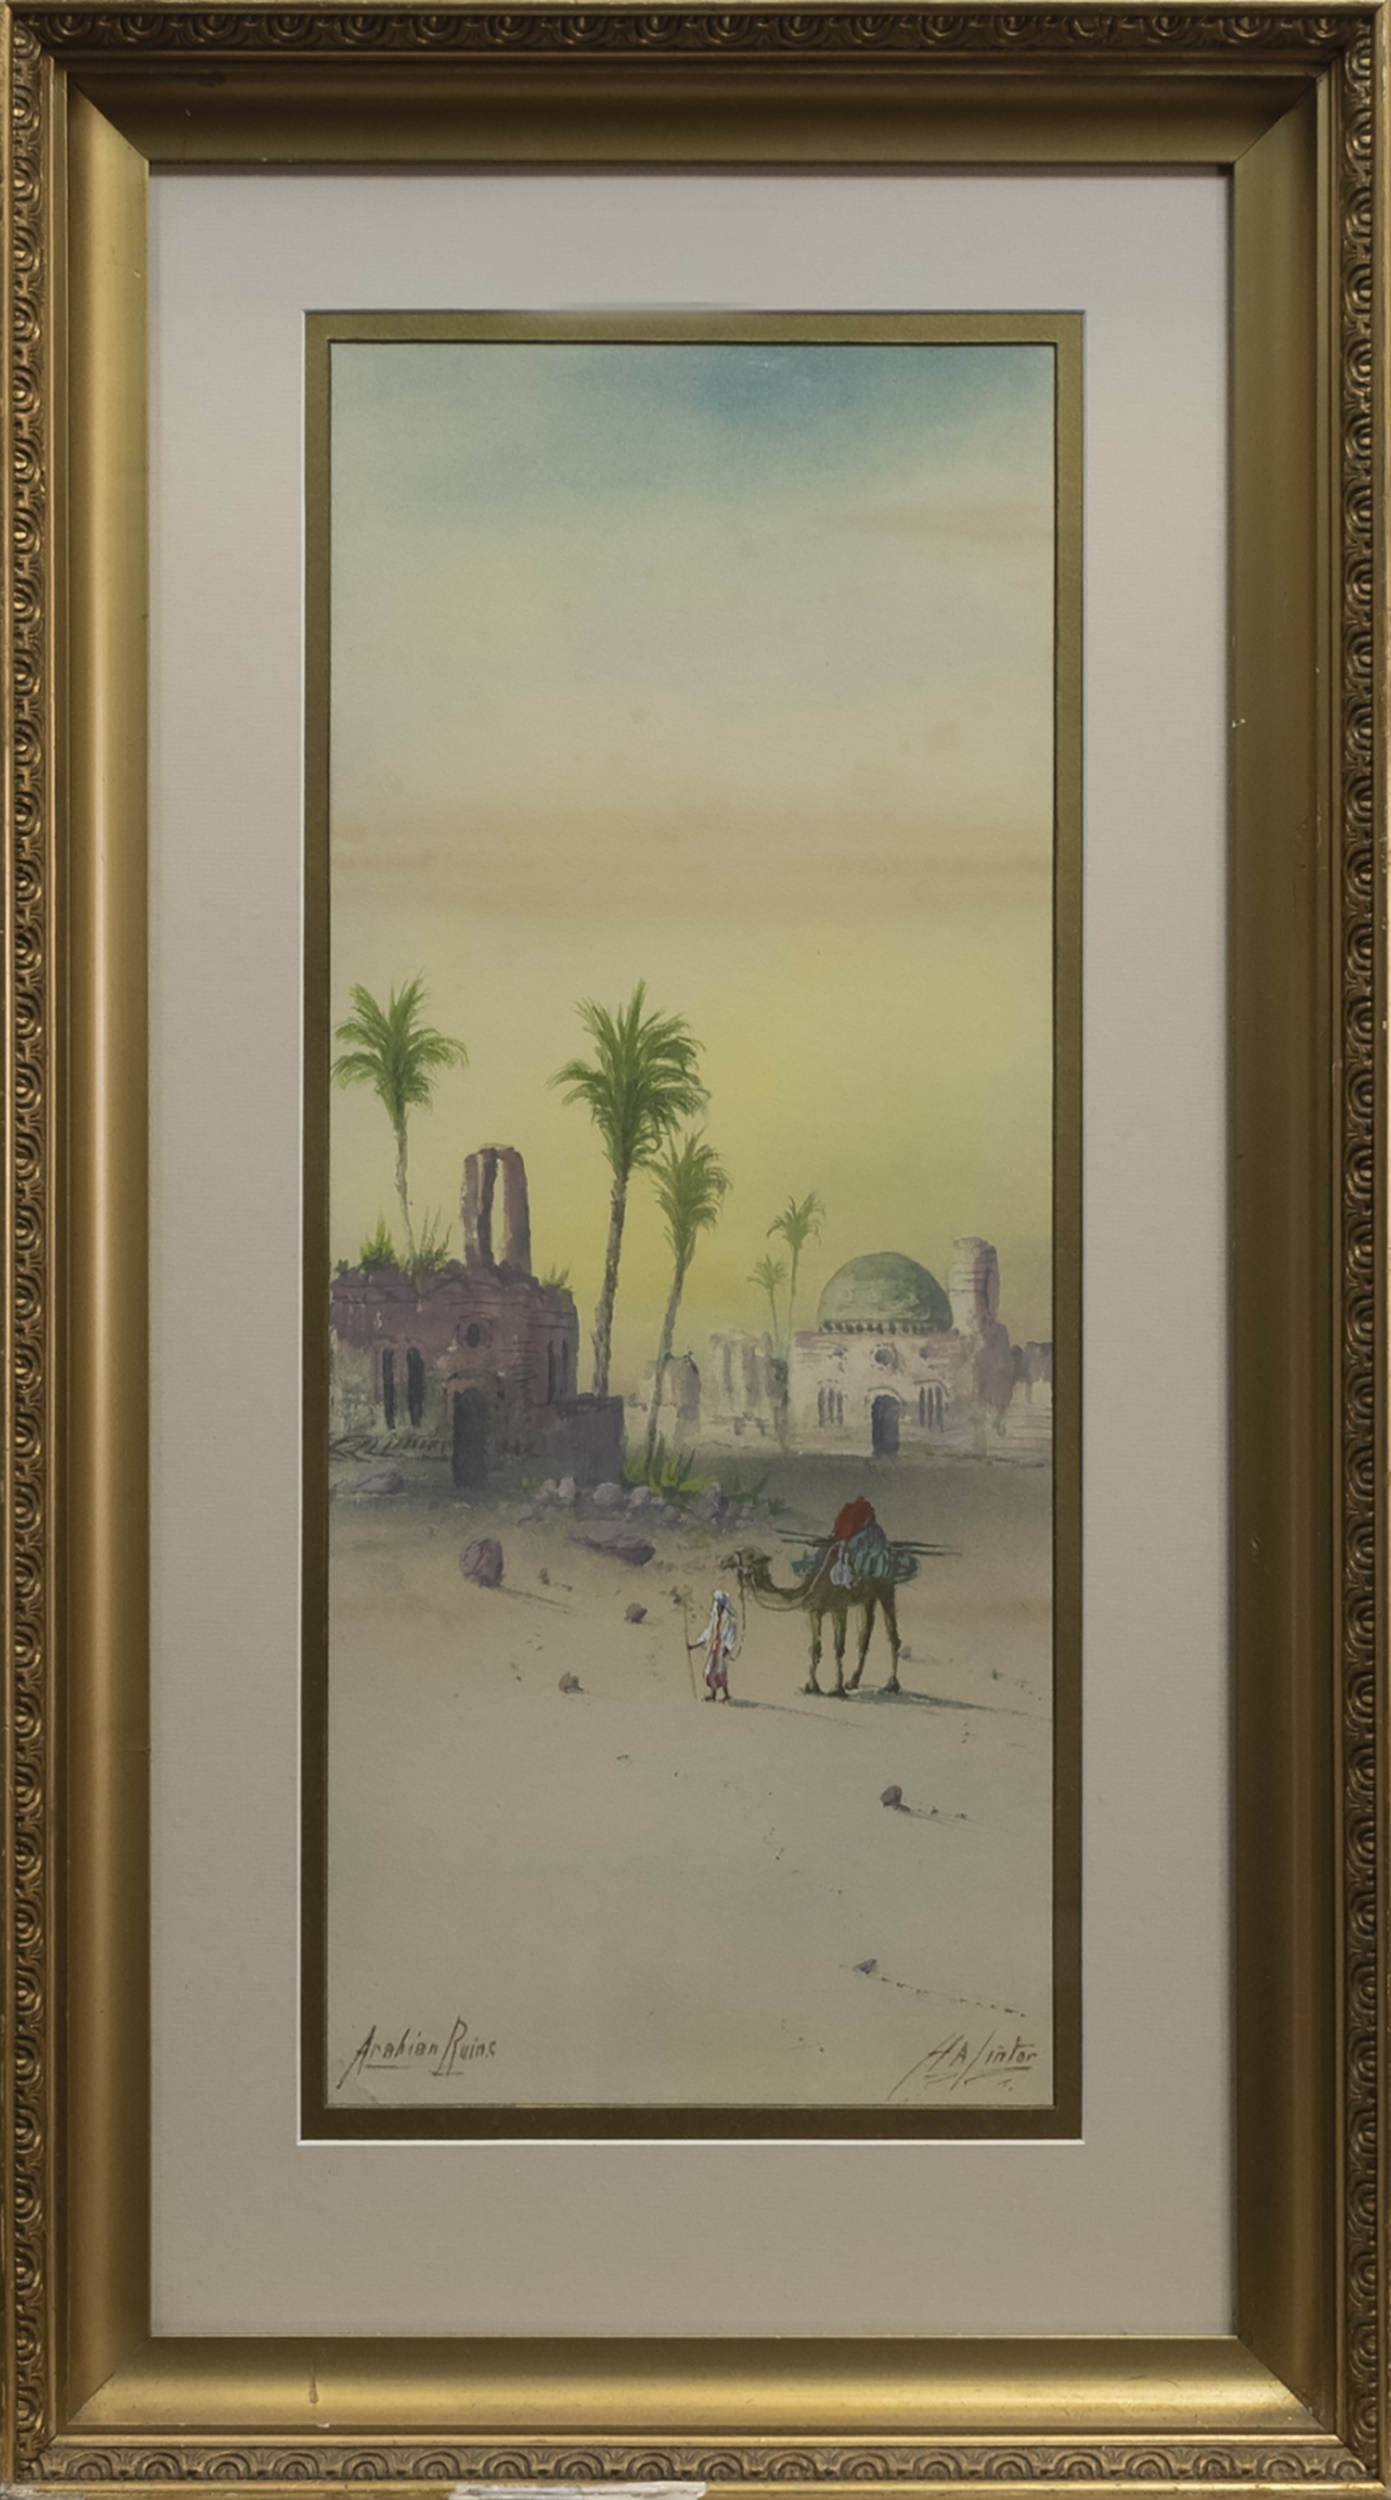 A PAIR OF MIDDLE EASTERN WATERCOLOURS BY H. LINTOR